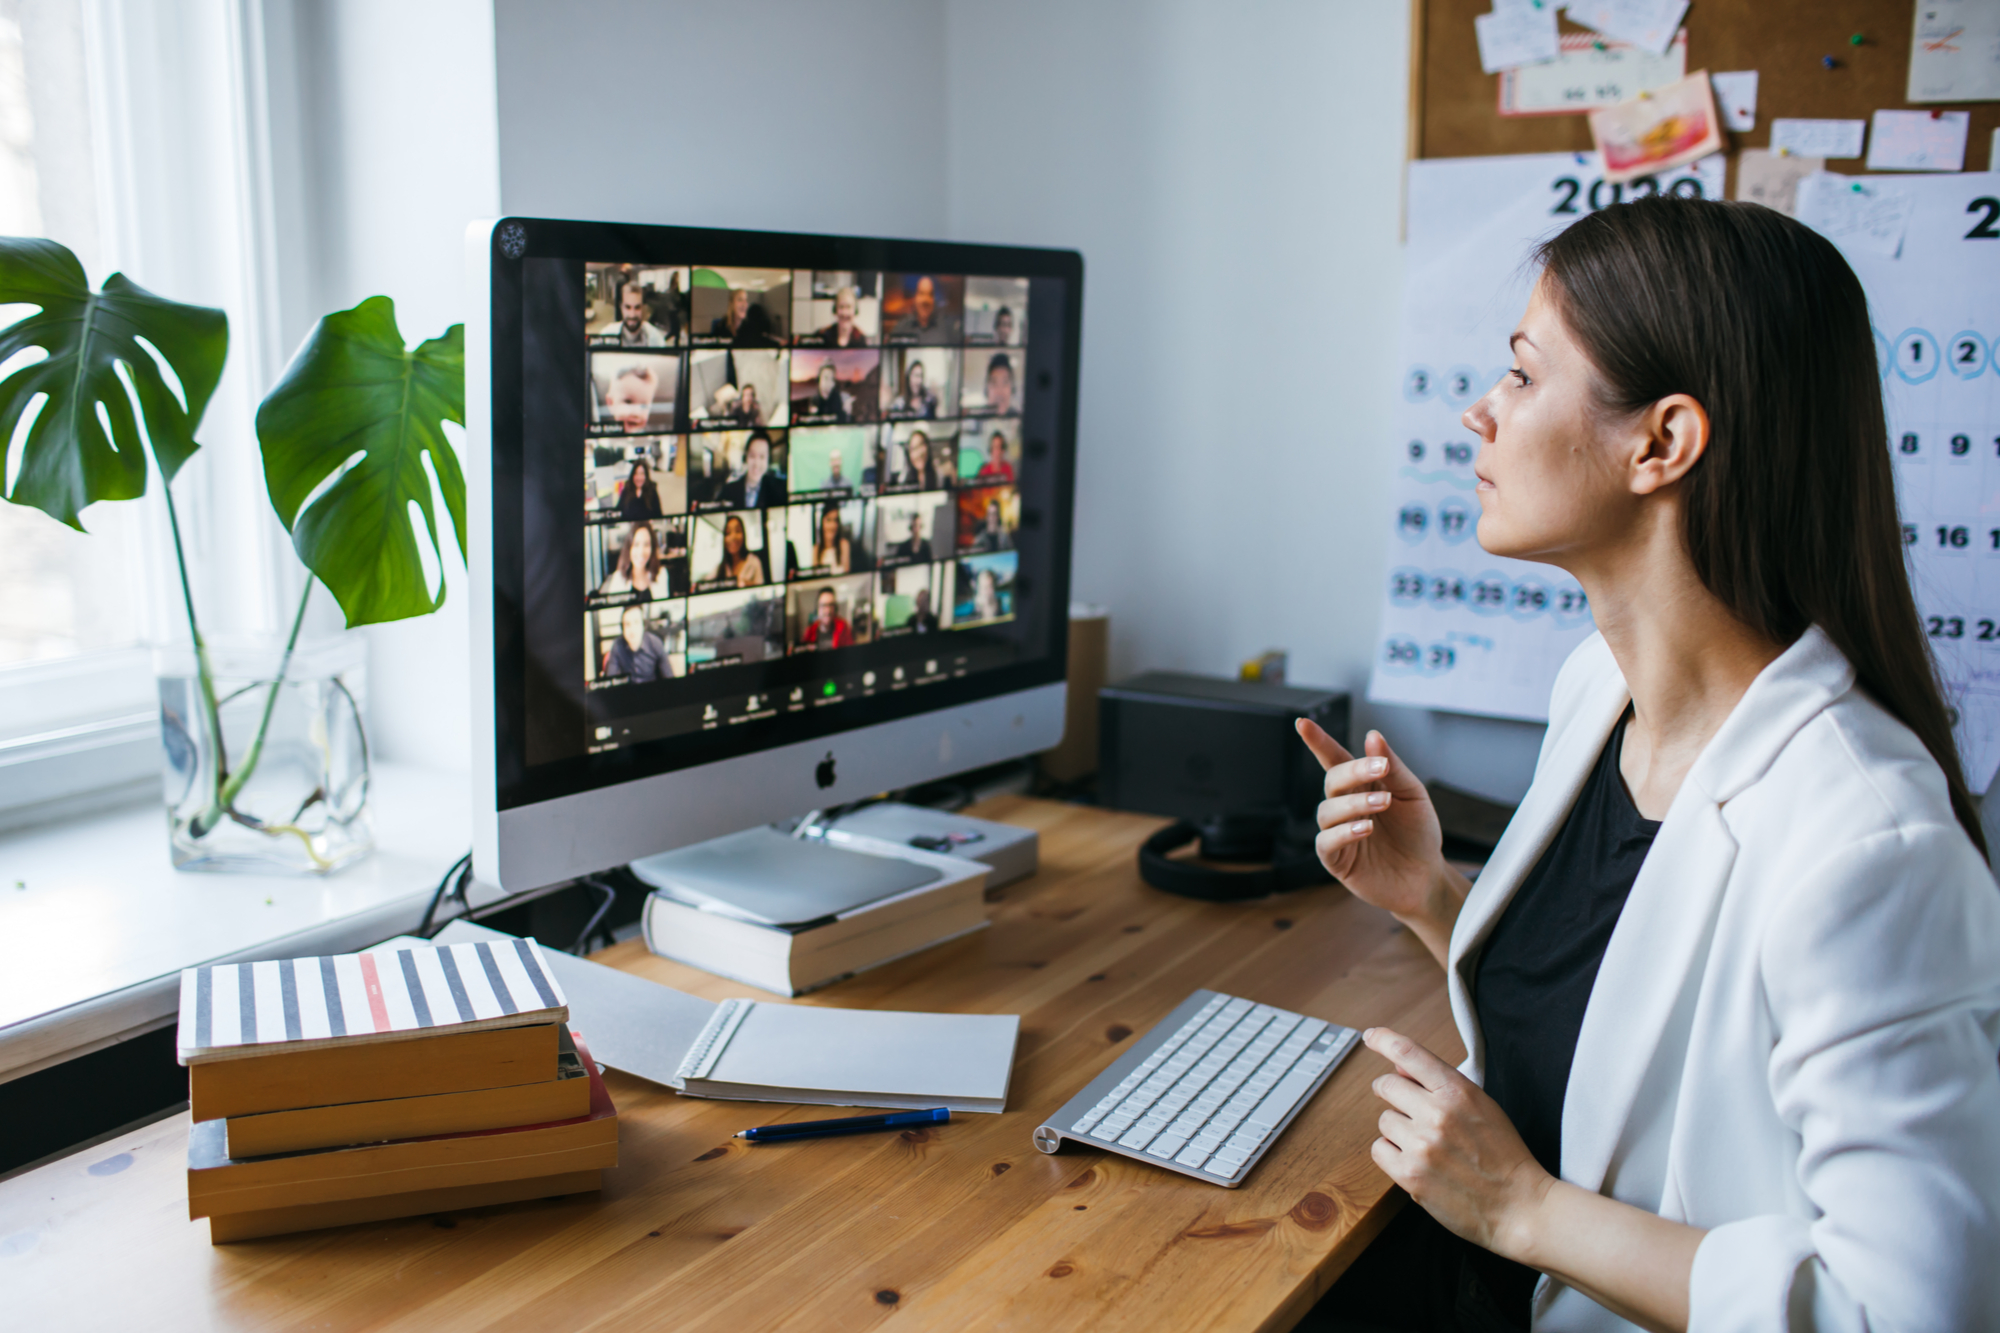 Improve your public speaking skills to be more comfortable on large Zoom calls and other online meetings.